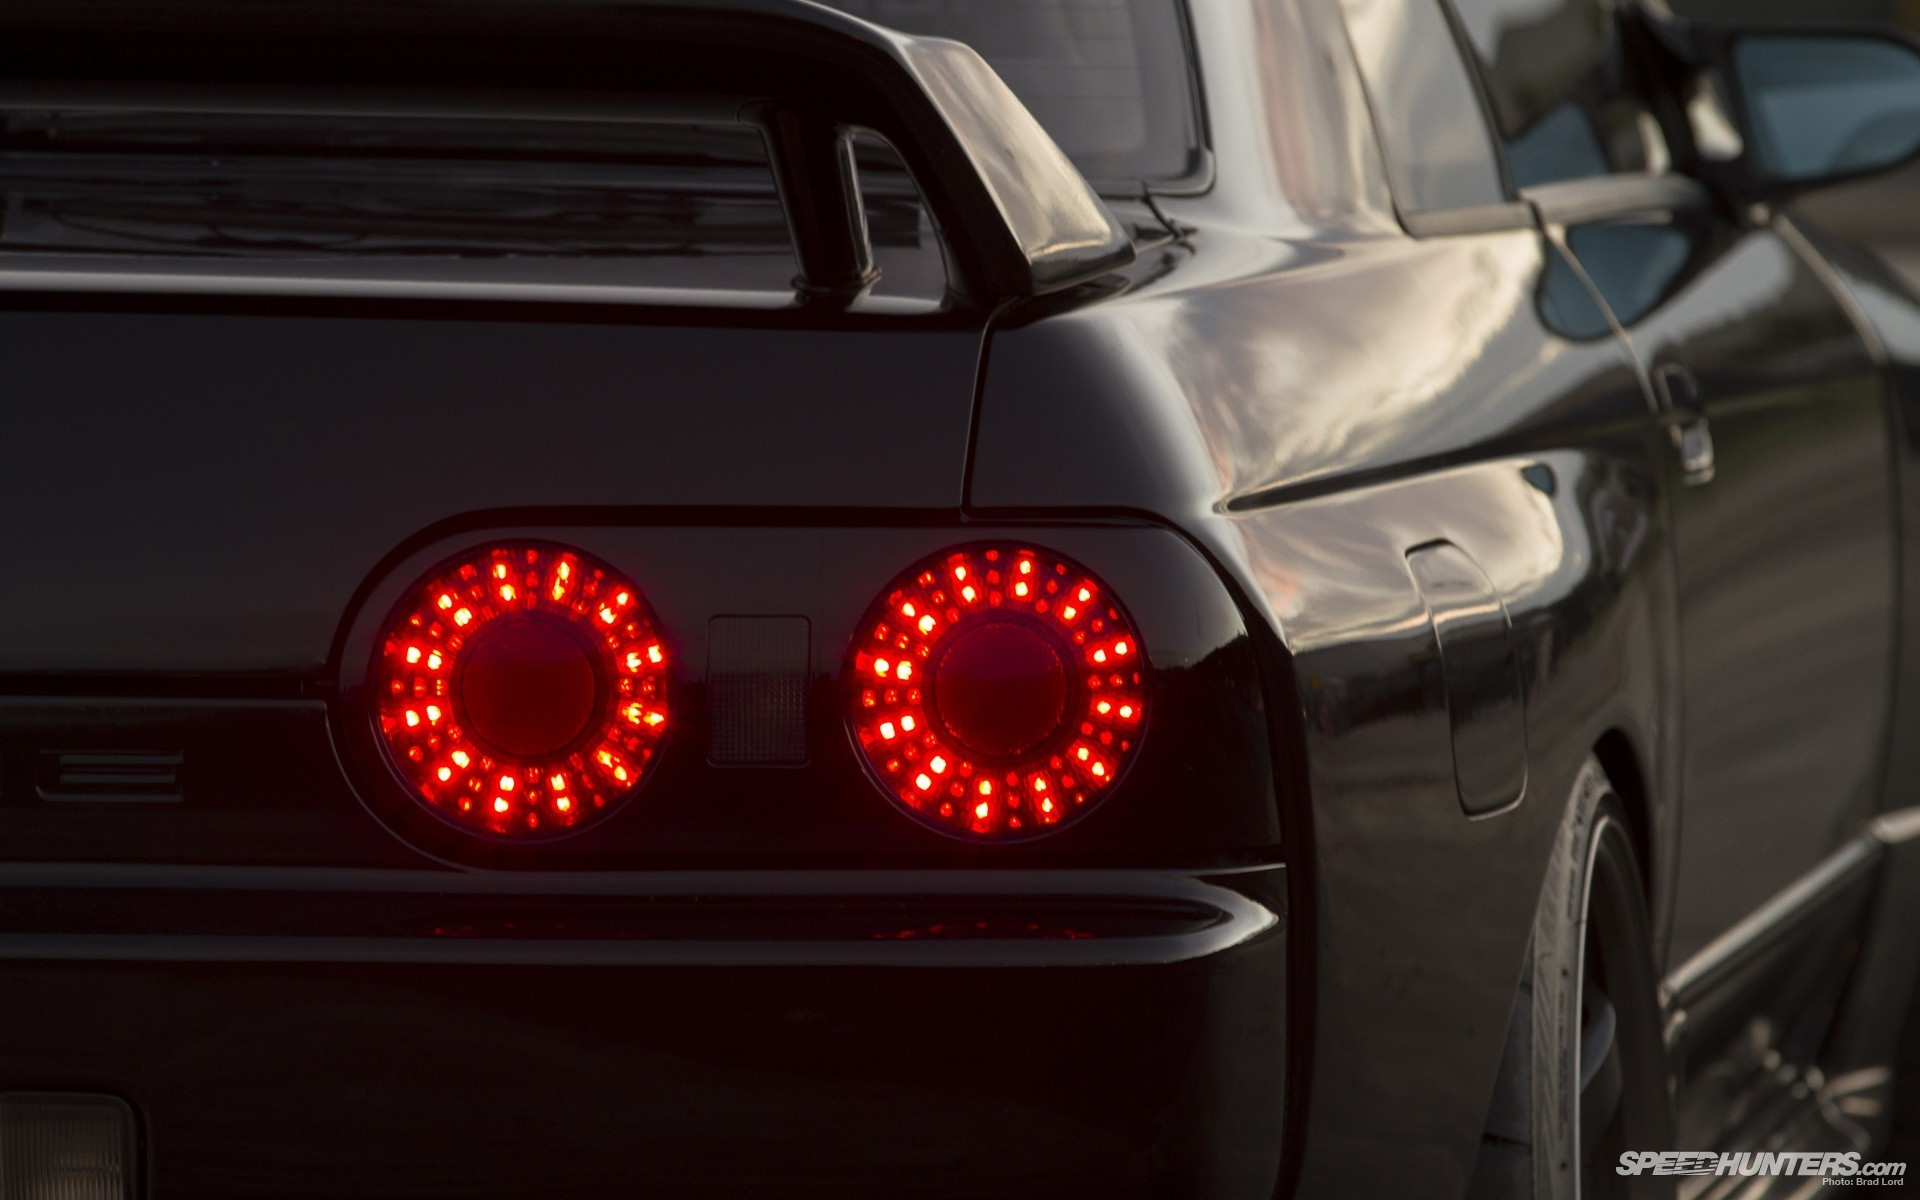 1920x1200 car, Speedhunters, Nissan Skyline R32 Wallpapers HD / Desktop and Mobile  Backgrounds